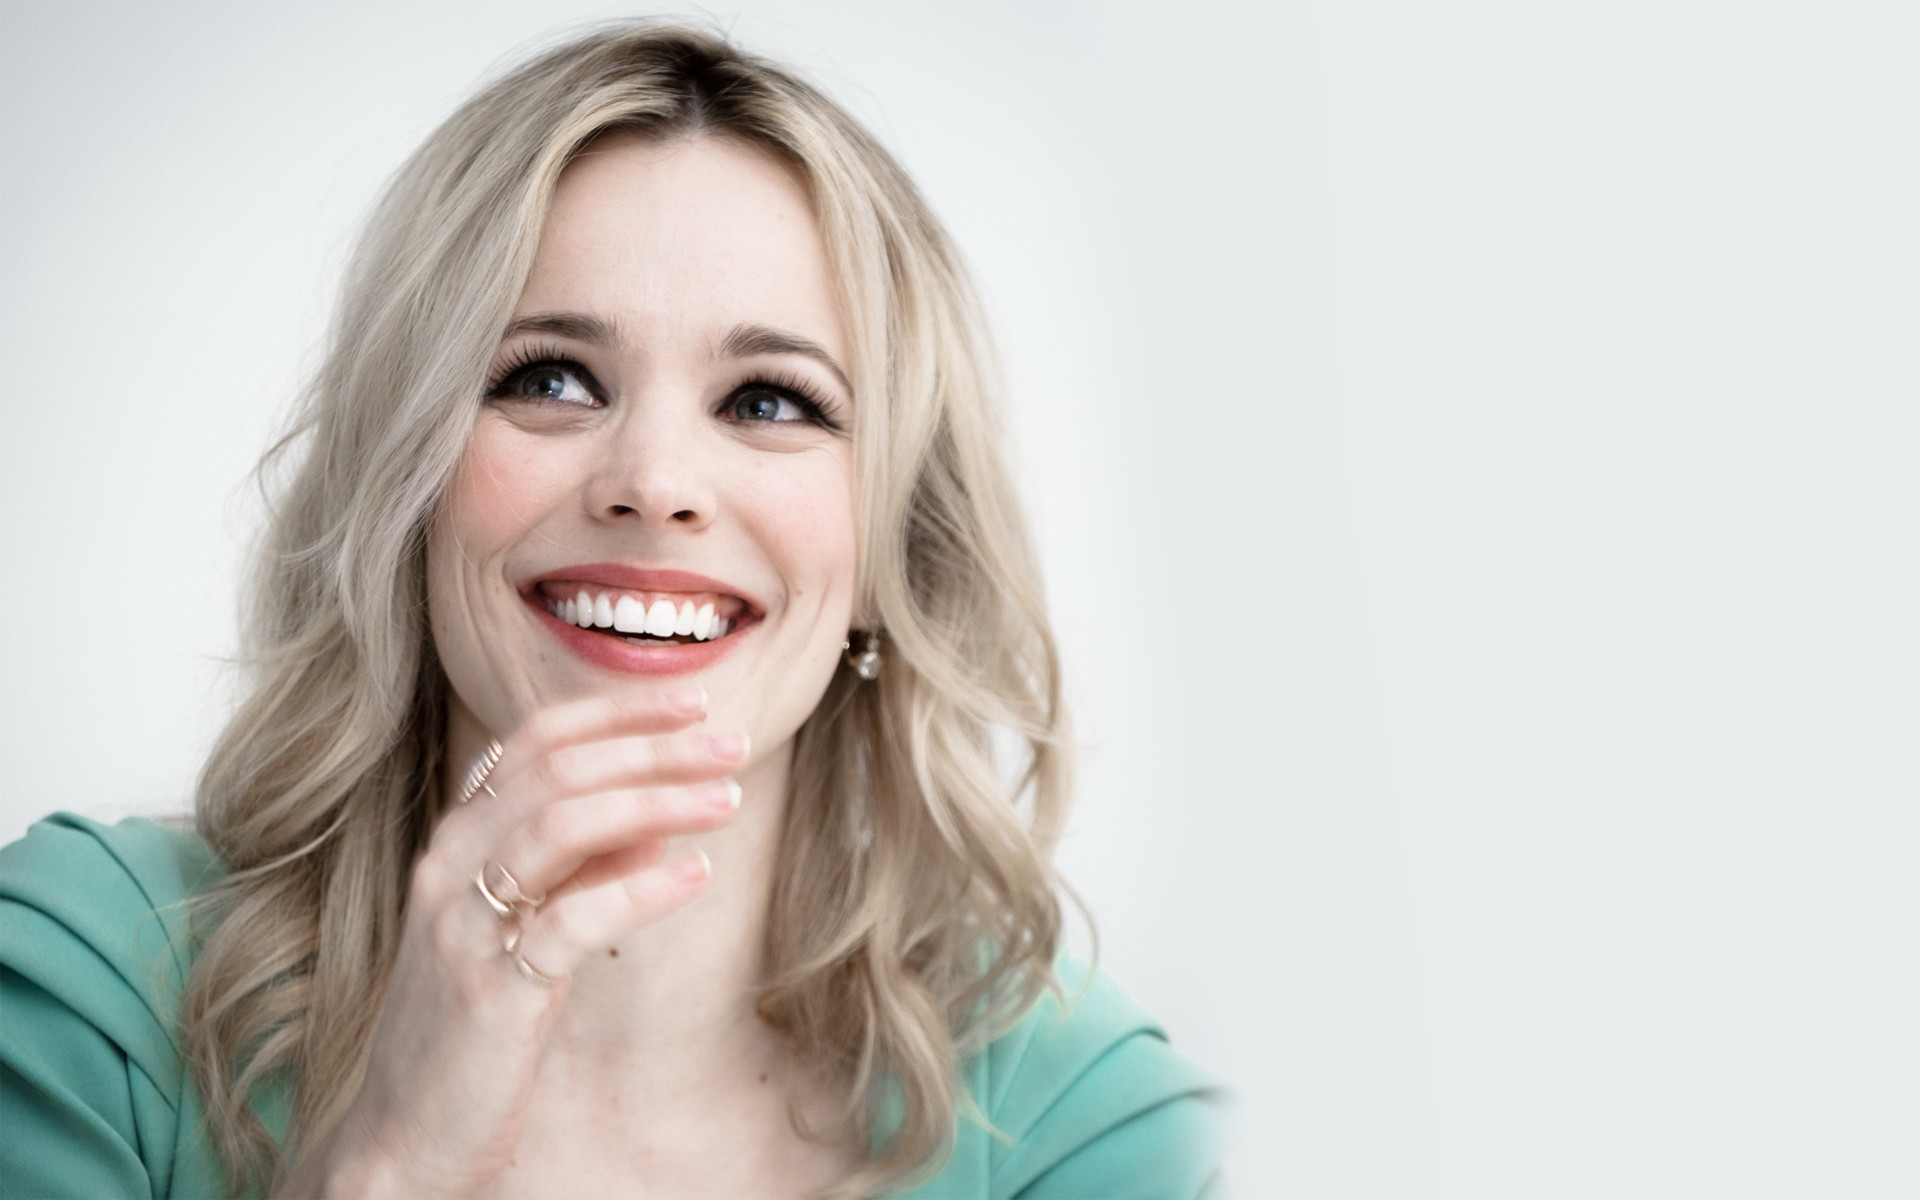 happy rachel mcadams wallpaper 51259